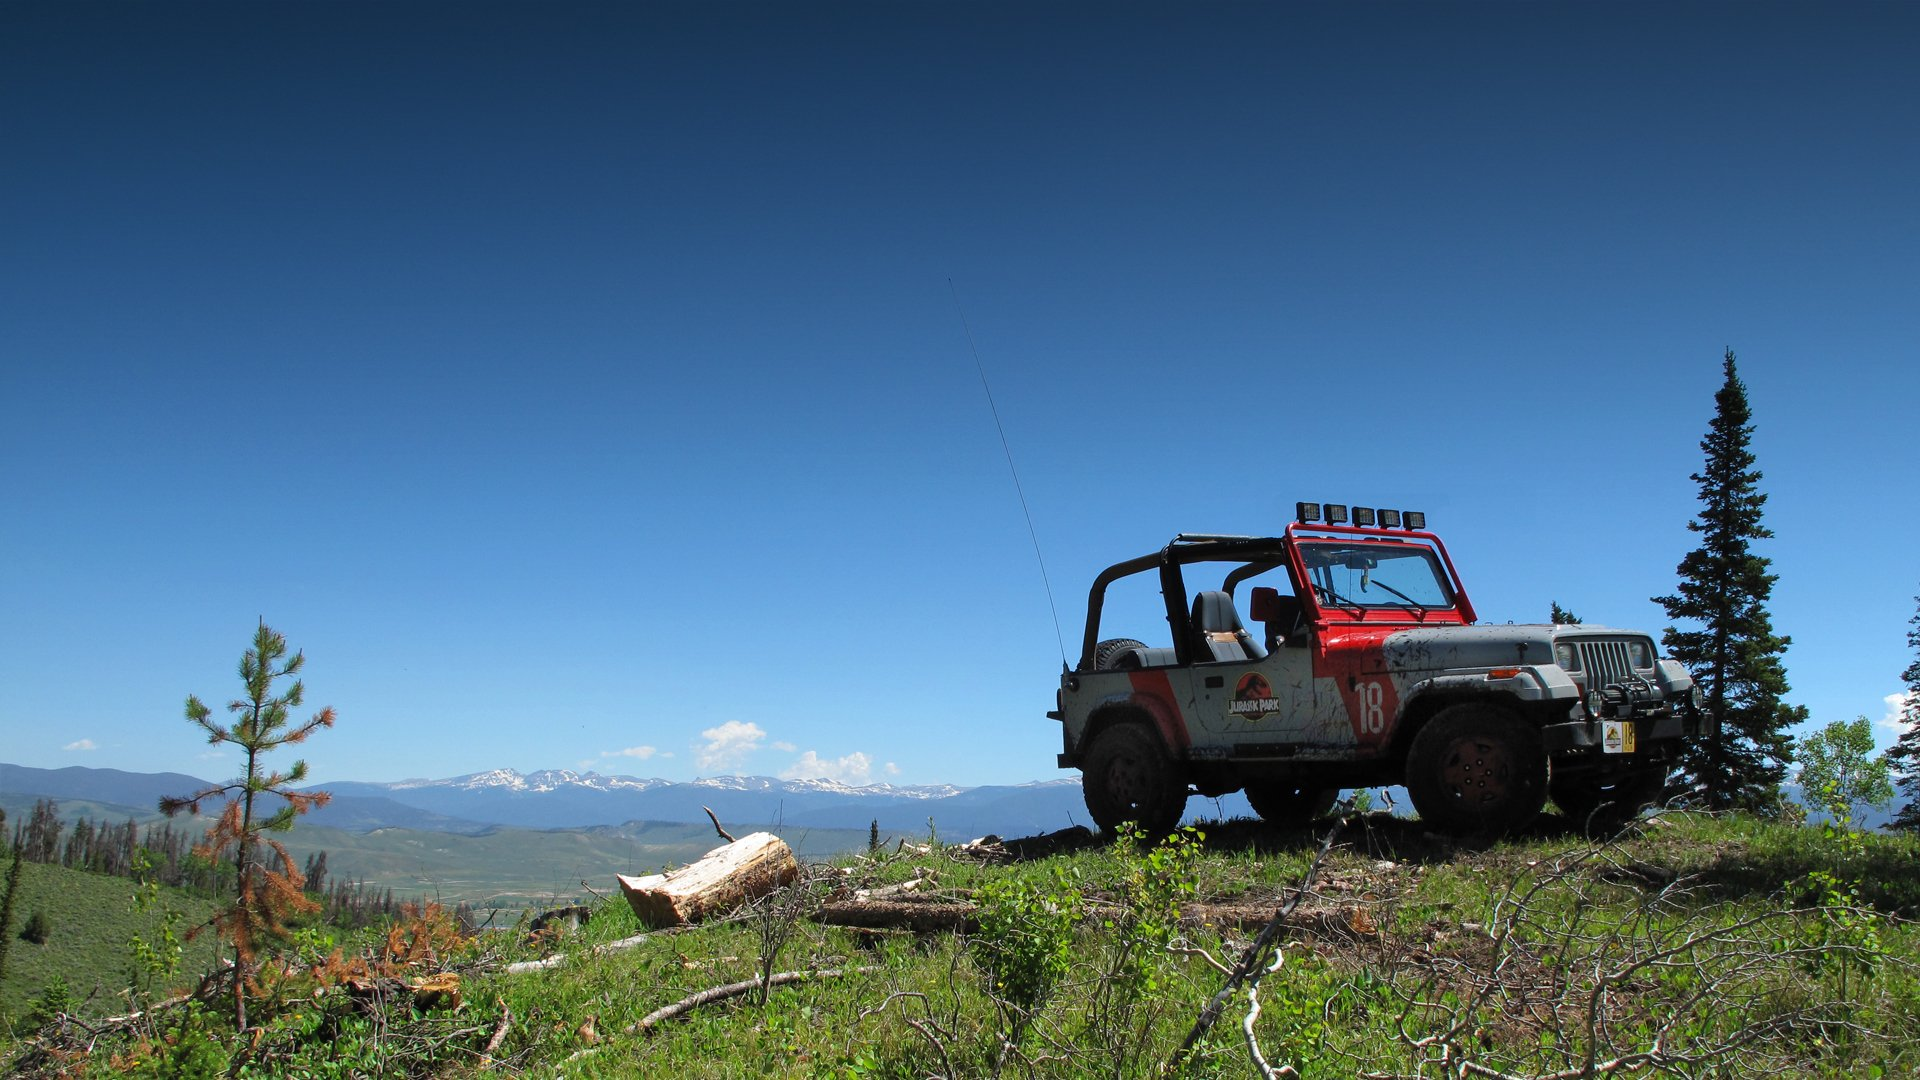 Jurassic Park Jeep To The Top Wallpaper 1920x1080 563920 Wallpaperup